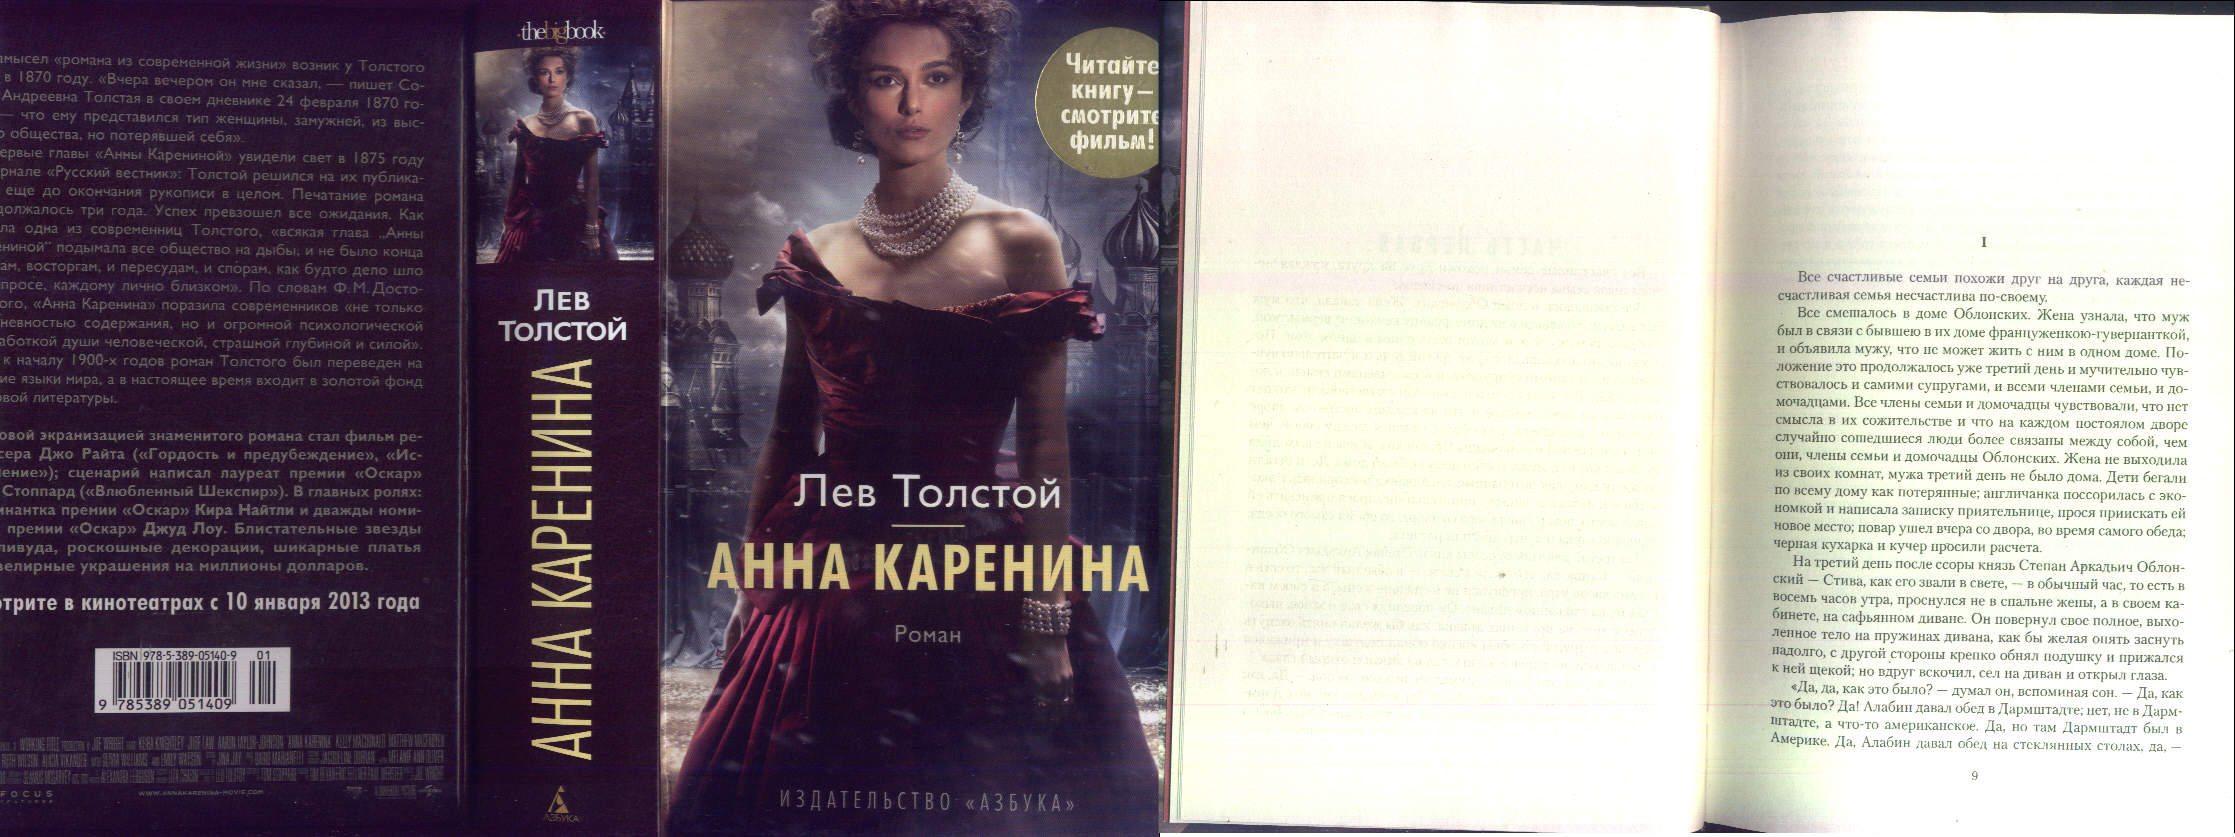 """book review on anna karenina essay To say what """"anna karenina"""" was """"about"""" would be  a negative book review marco roth's recent essay for n+1 titled """"rise of the neuro-novel."""